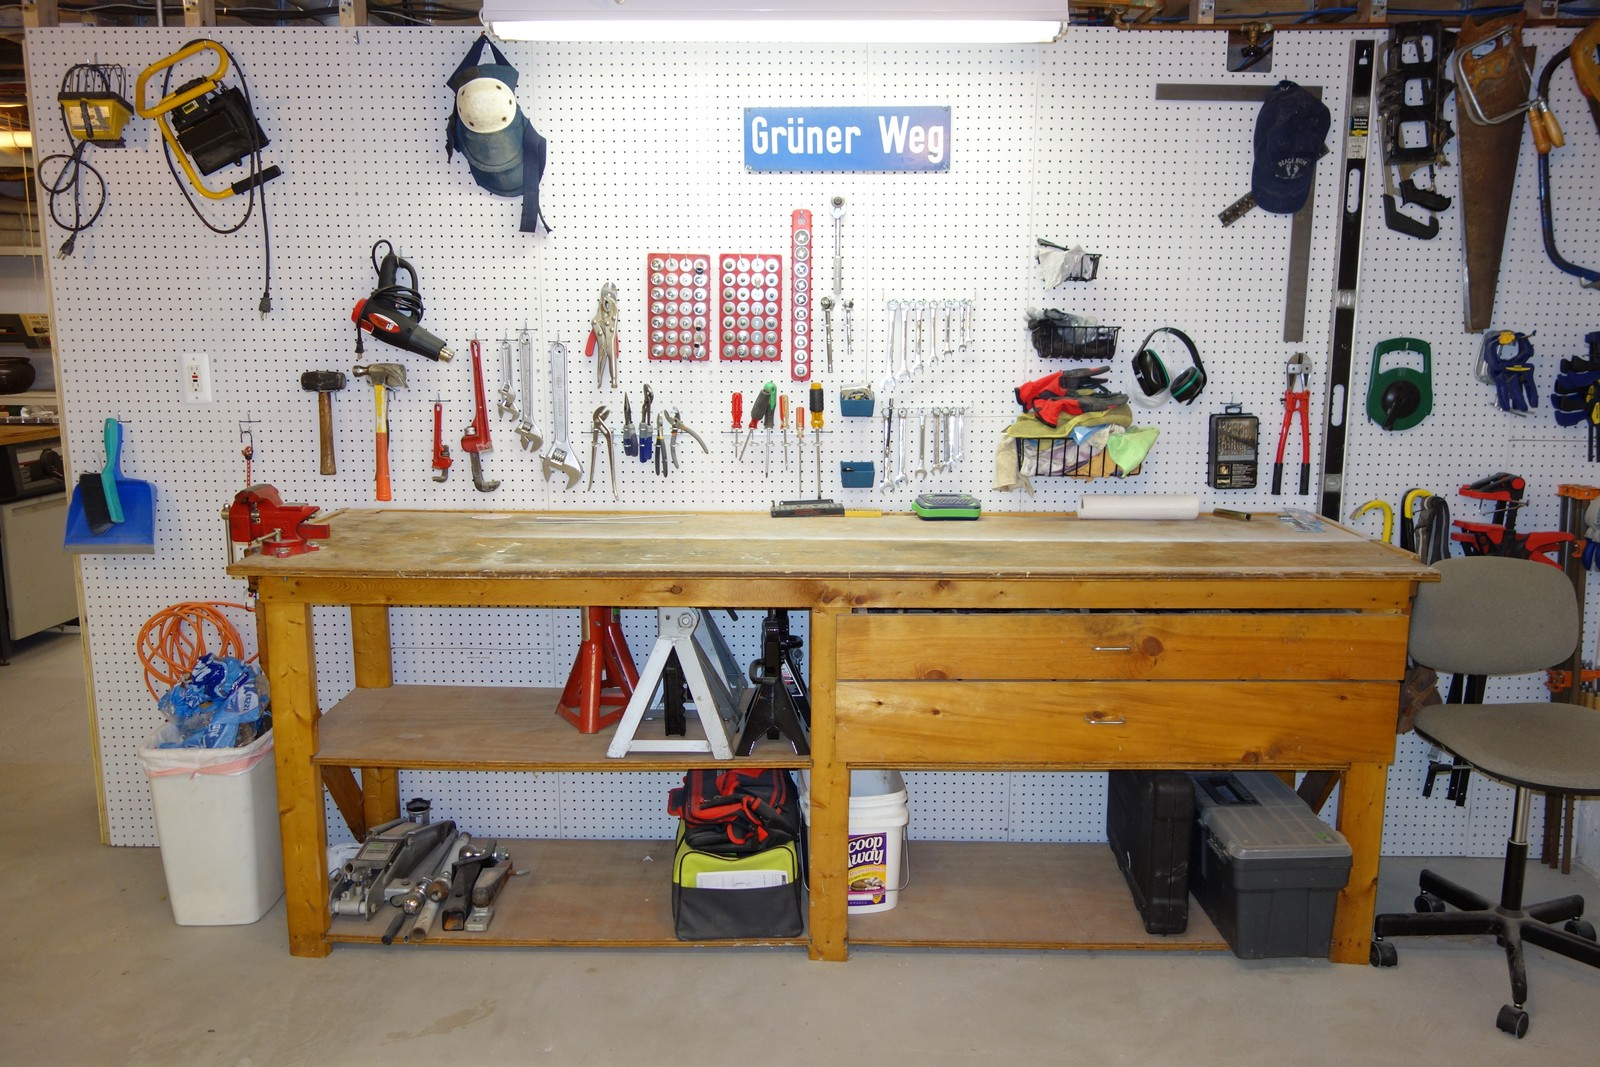 I used to store all of my tools in the drawers within the workbench, but would have to dig through each drawer to find them. HAving the tools on display on the wall makes finding and replacing them much faster.